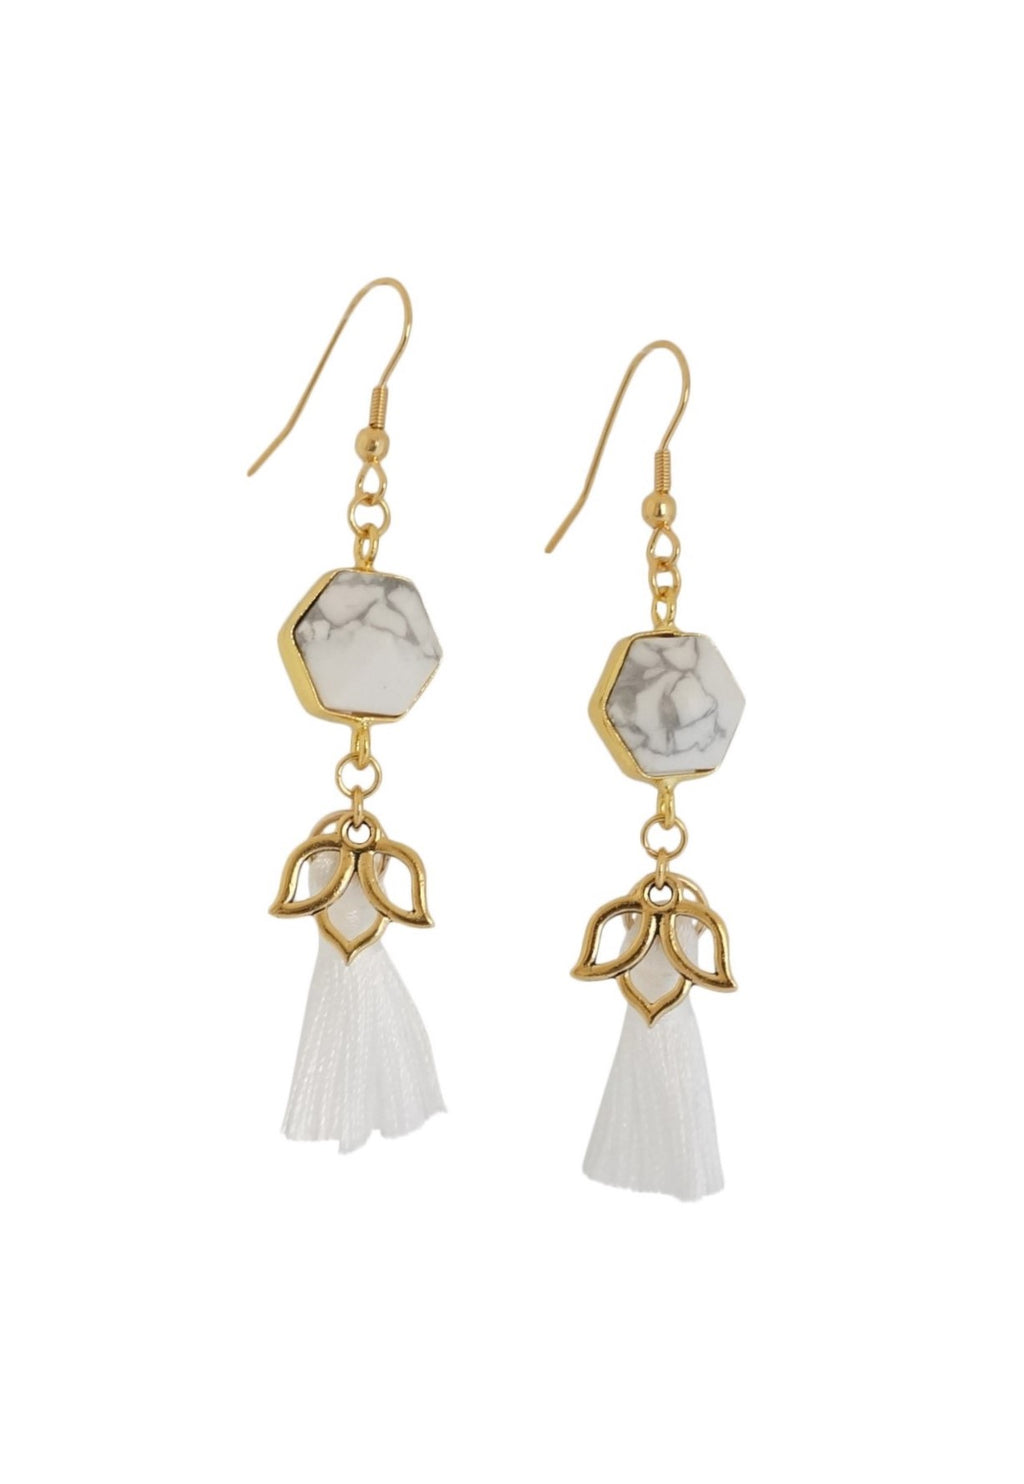 Calm Earrings - Carolyn Hearn Designs